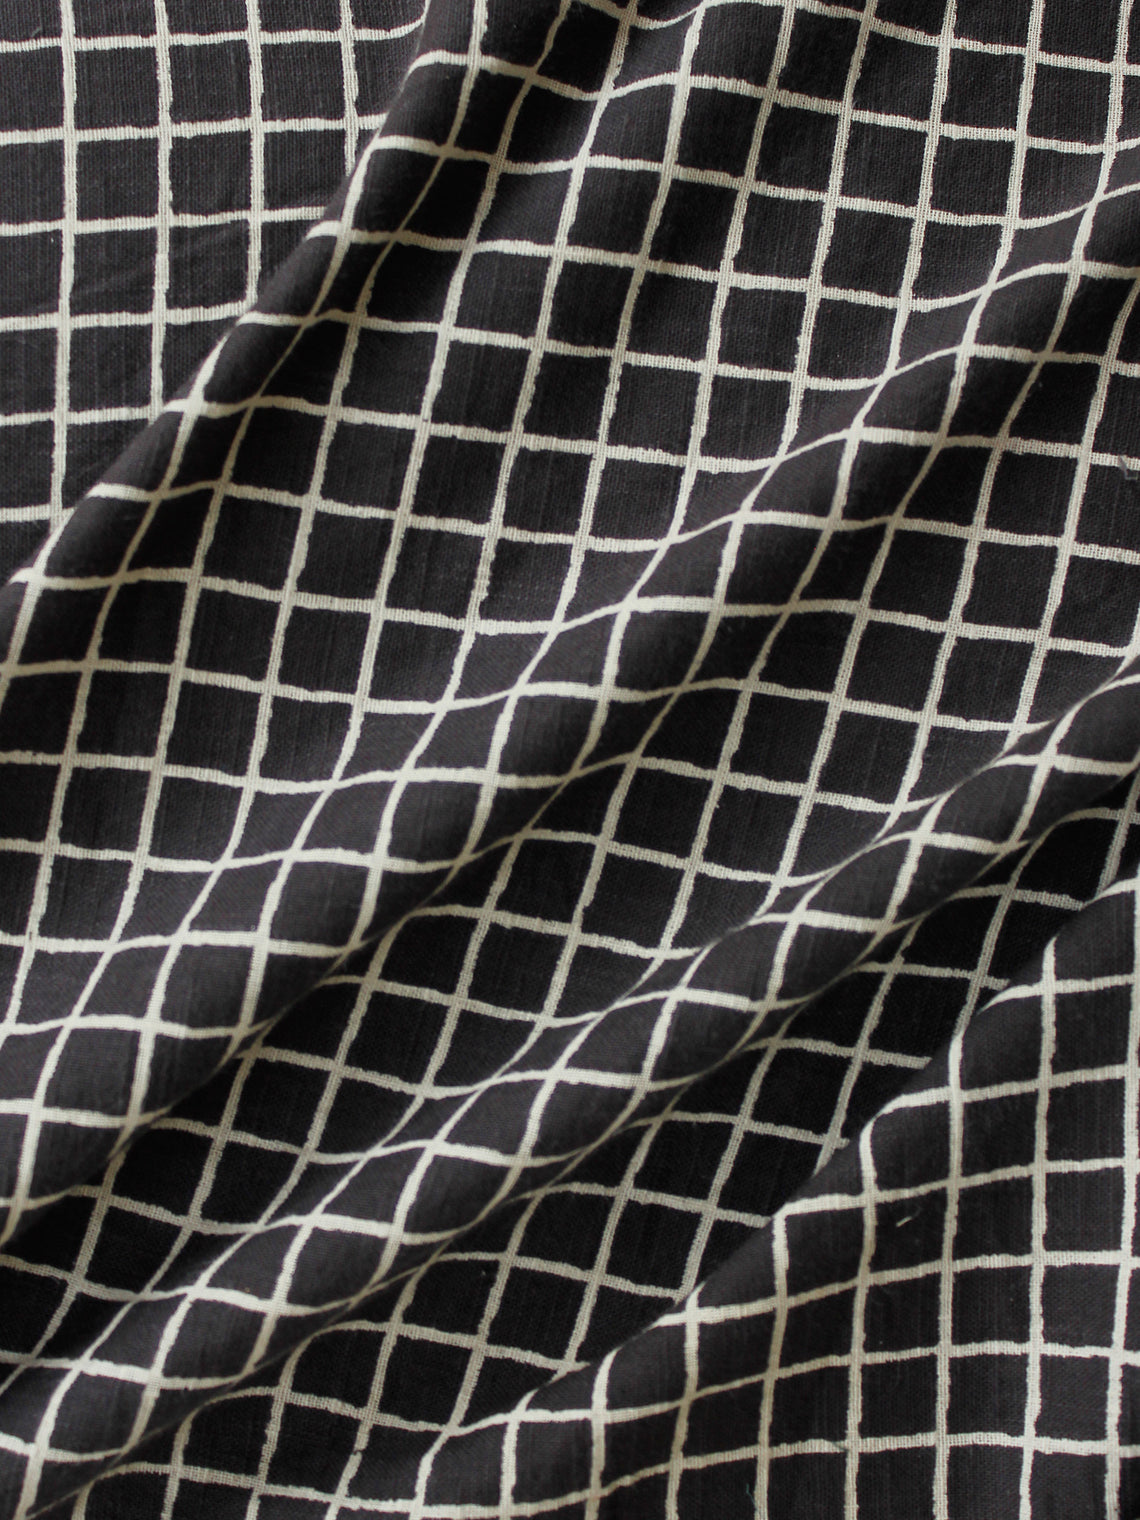 Black Ivory Hand Block Printed Cotton Fabric Per Meter - F001F1866